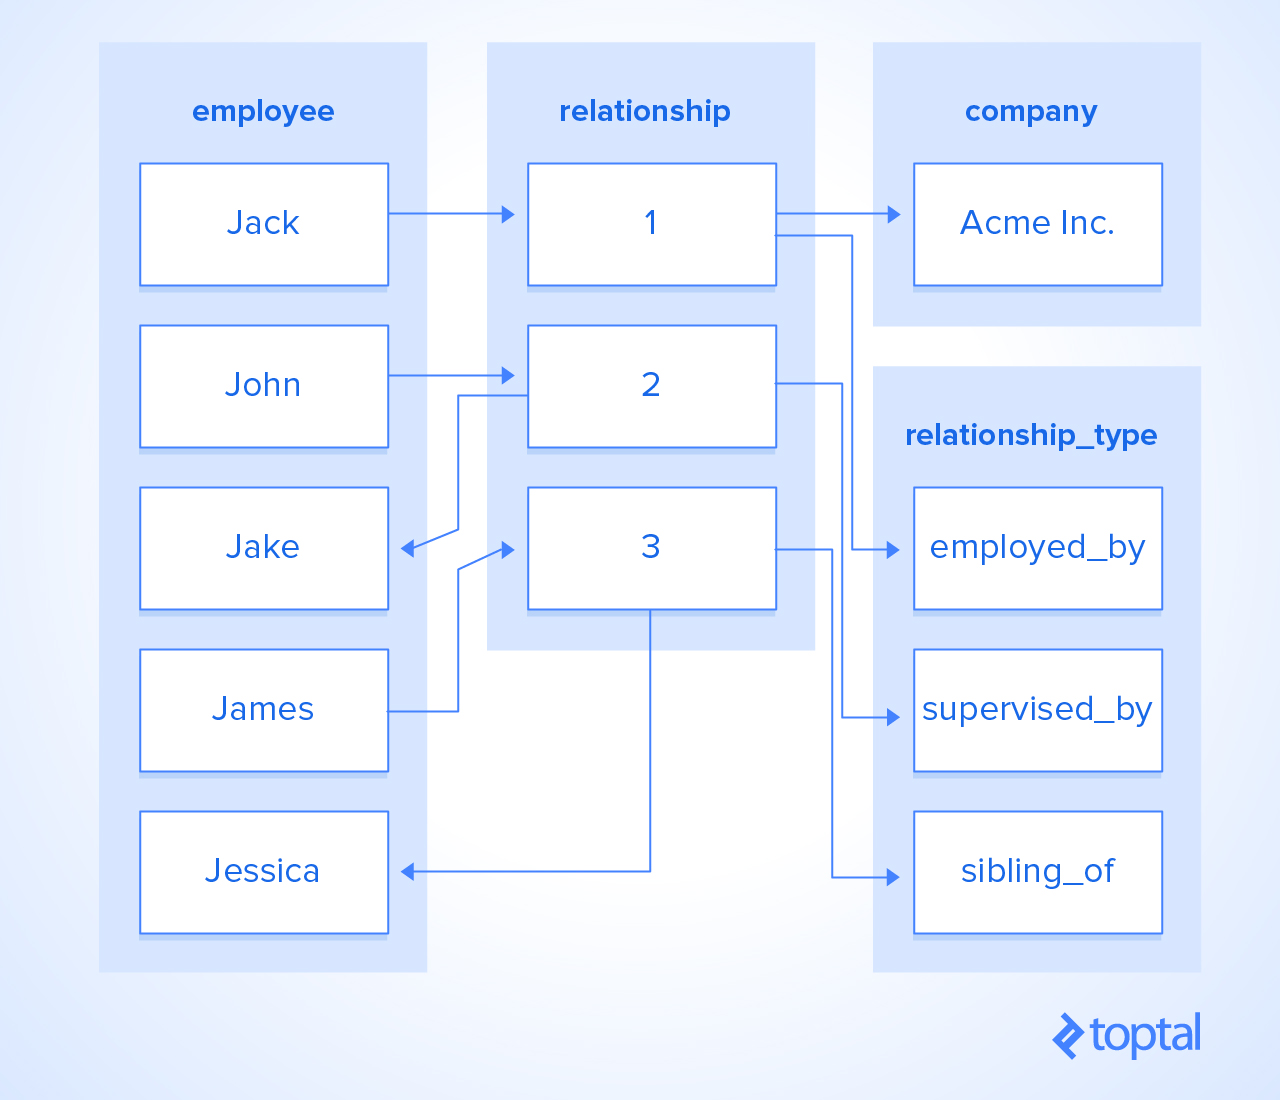 Database tables: employee, company, relationship, relationship_type